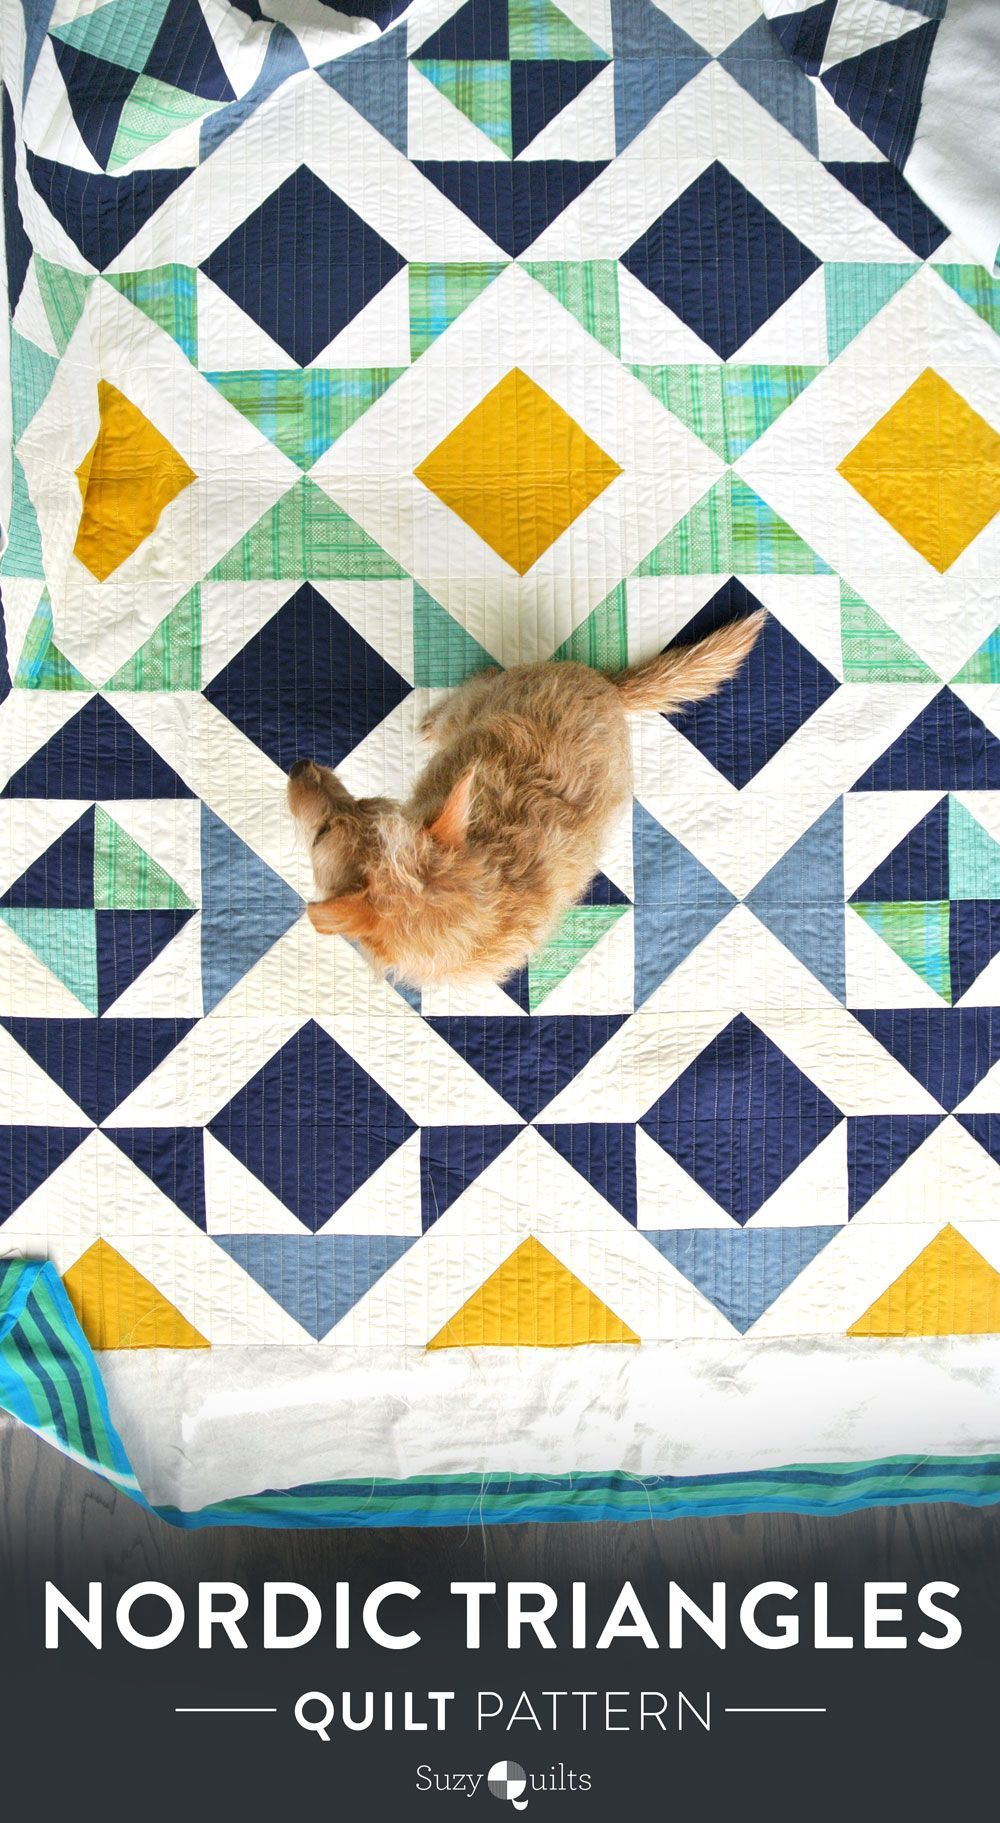 Nordic Triangles Quilt Pattern Download Suzy Quilts This Nordic Triangles Quilt Pattern Design Gath In 2020 Triangle Quilt Pattern Triangle Quilt Quilt Patterns